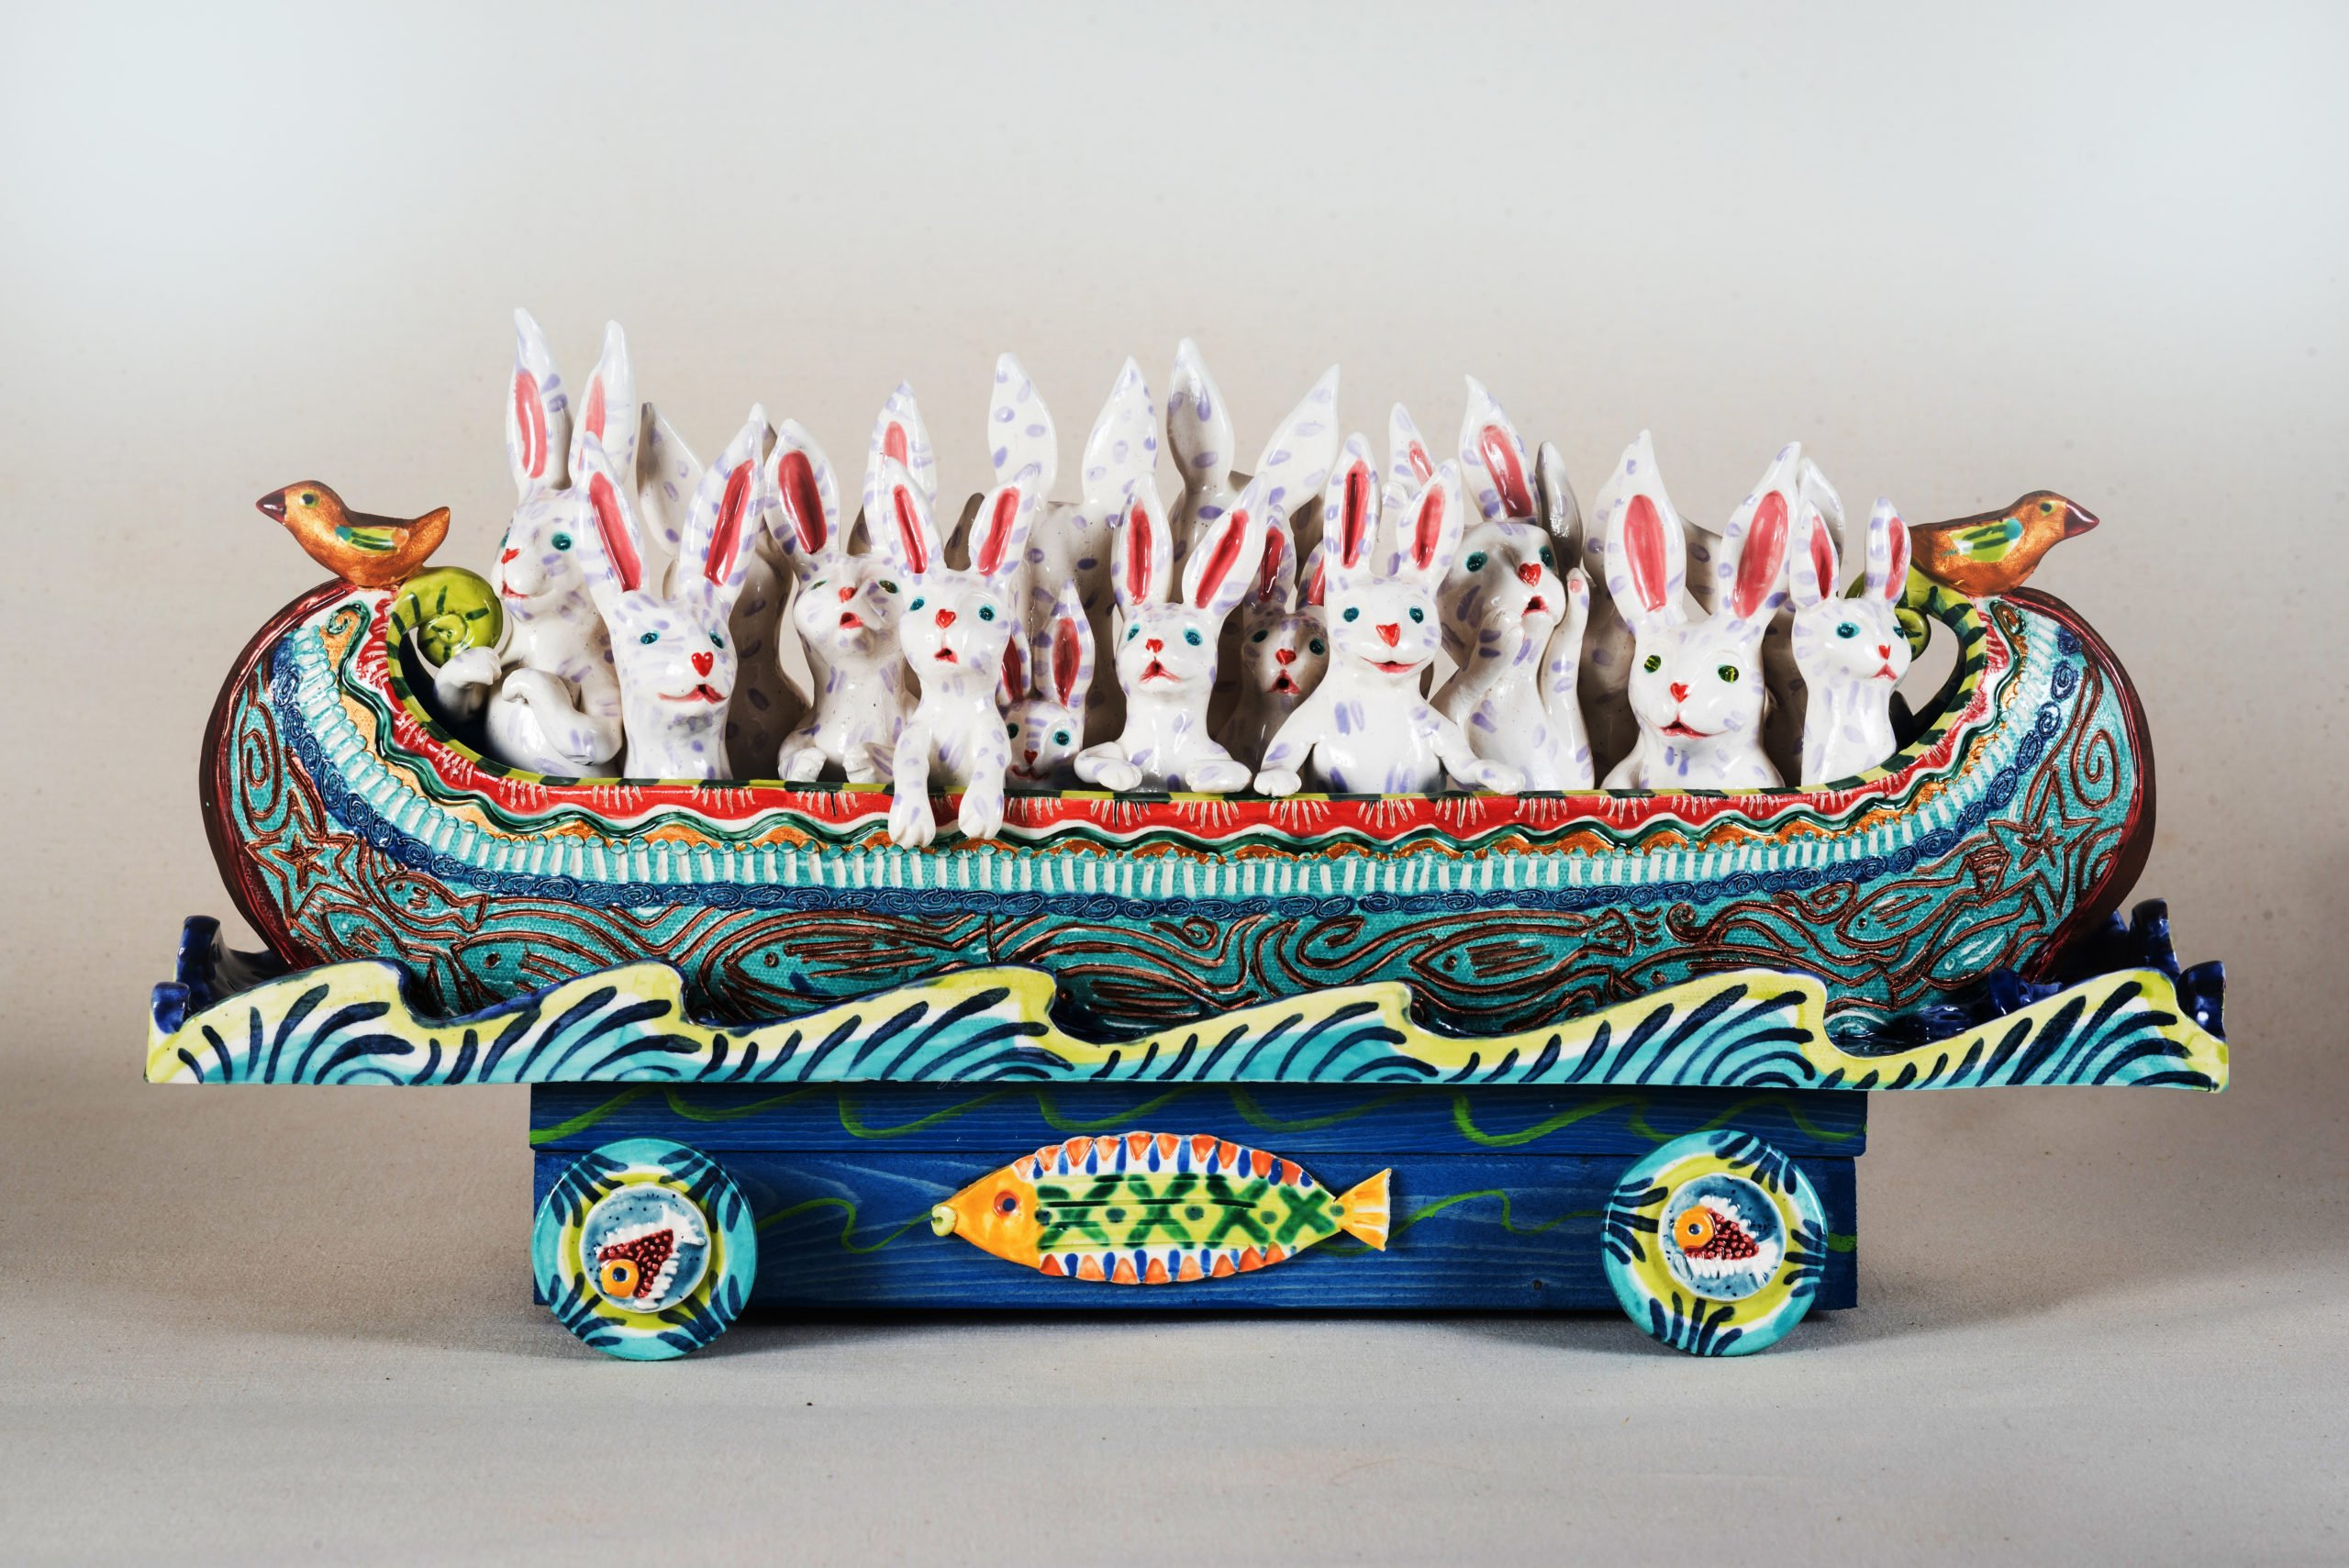 abbits in a folkart boat on wheels depict the issue of migration